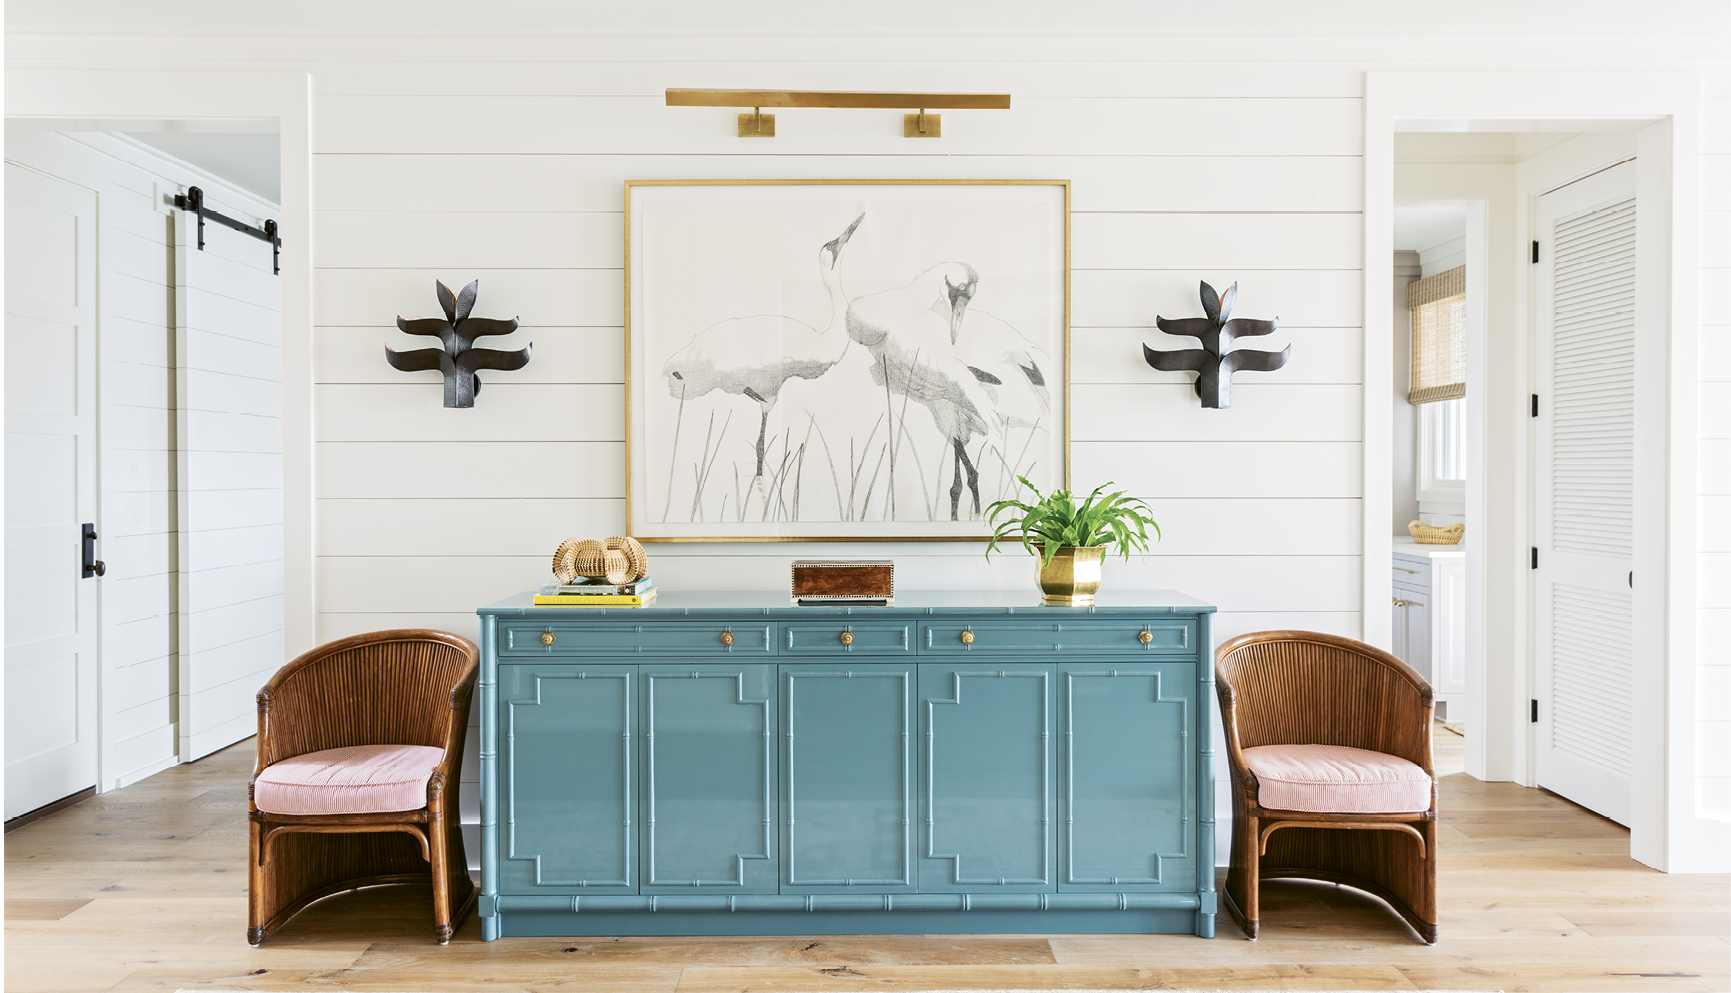 "Perky Pastels: A custom-designed French blue credenza punctuates the McElveens' expansive entryway. Two vintage chairs from Charleston's Indigo Market and a Judith Vivell charcoal drawing, ""Whopping Cranes in Reeds II,"" finish off the vignette."